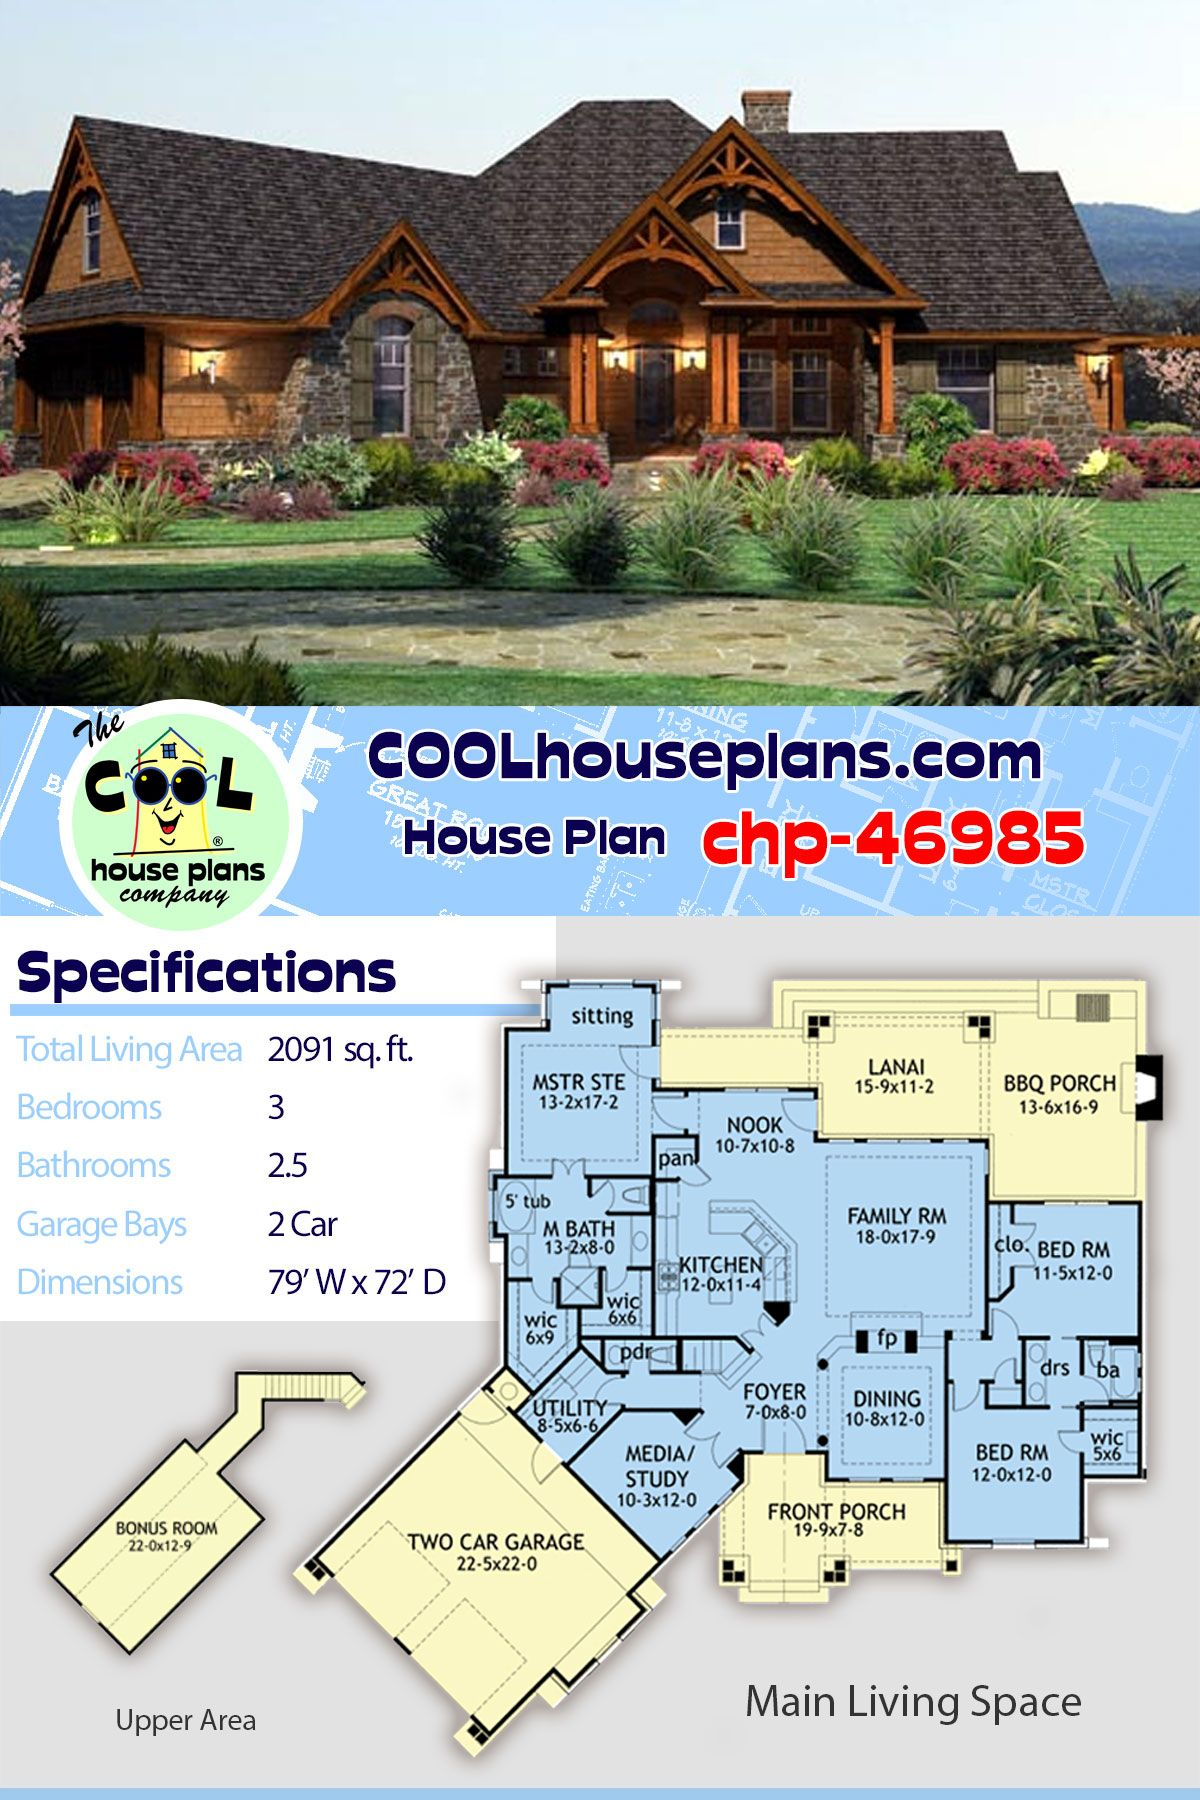 Tuscan Style Home Plan Chp 46985 At Cool House Plans Has 3 Beds And 2 5 Baths With A 2 Car Garage Rustic House Plans Tuscan Style Homes Basement House Plans